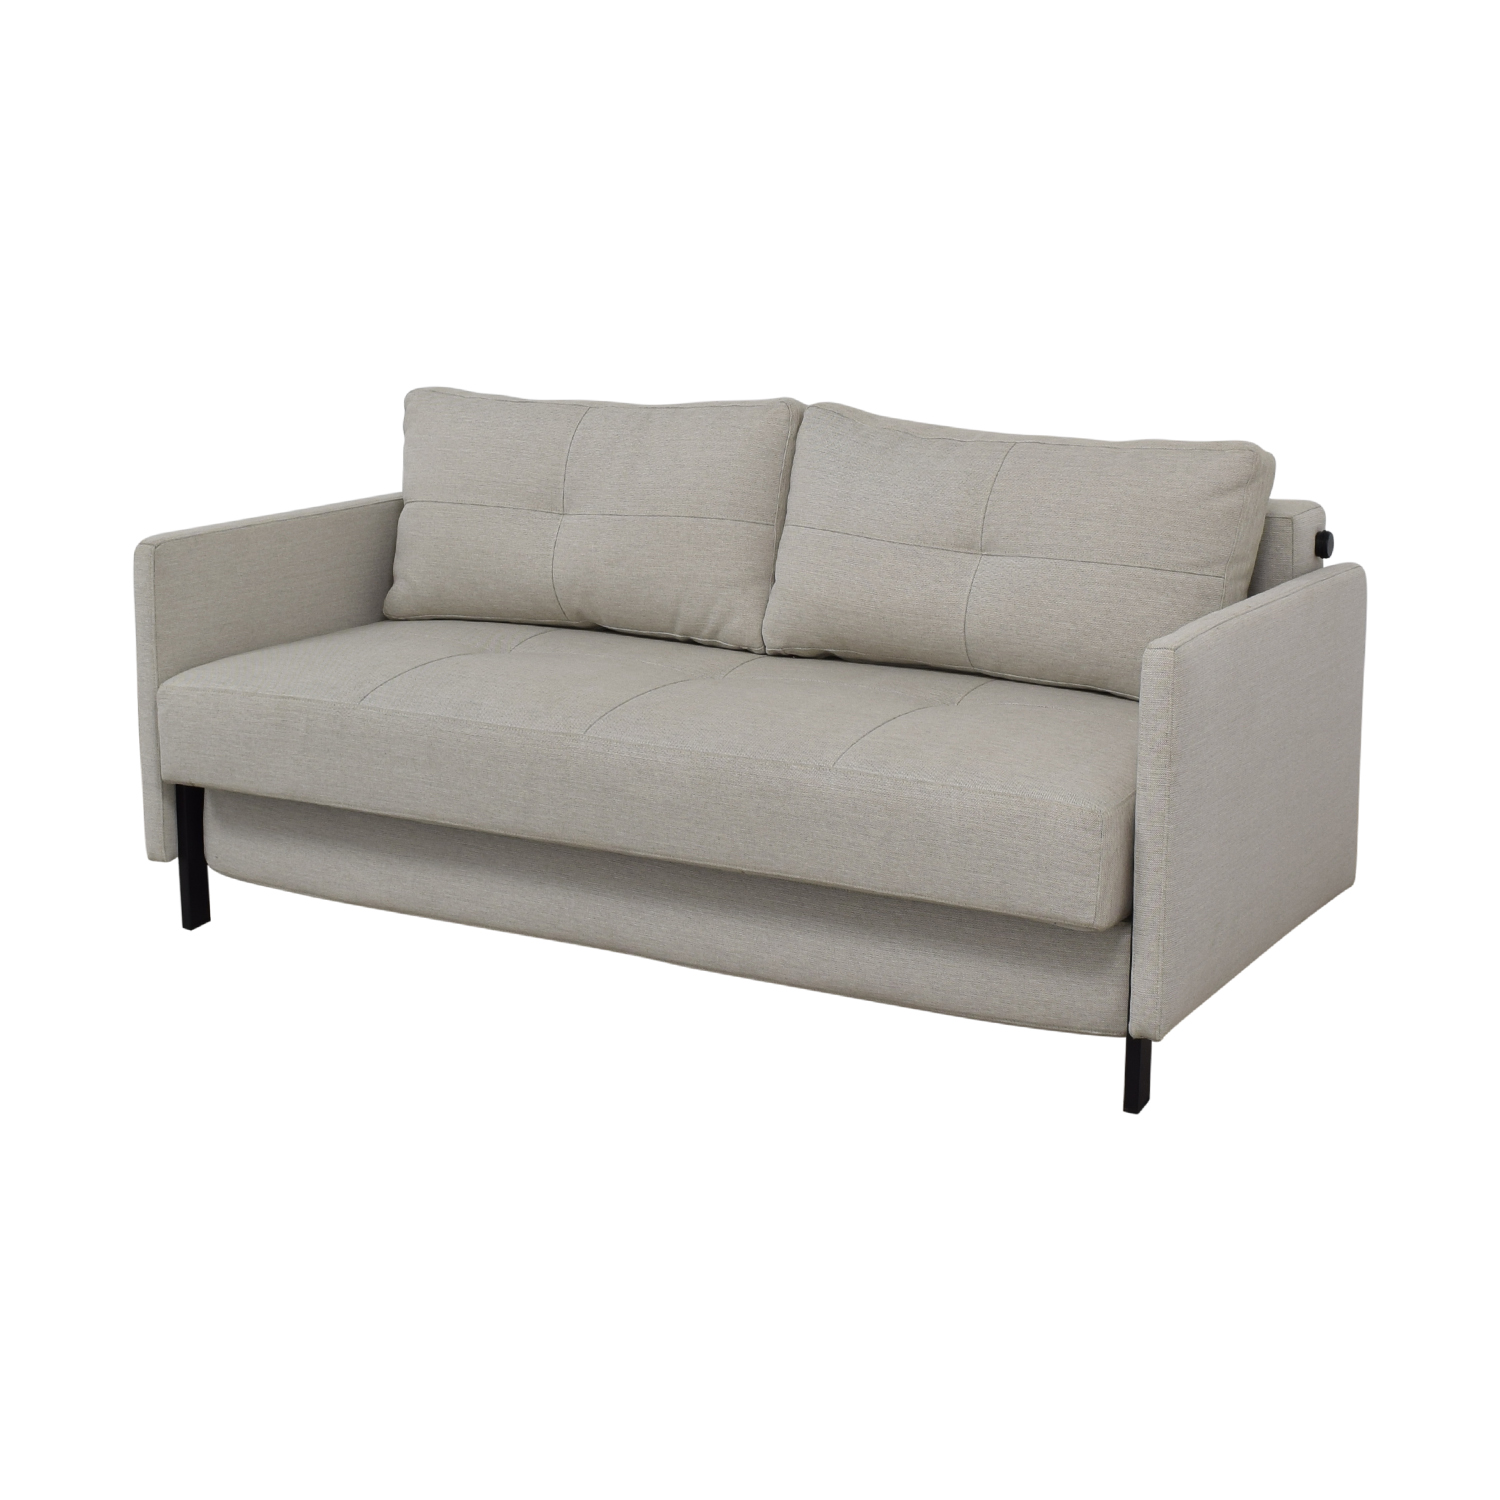 51 Off Innovation Living Innovation Living Convertible Sofa Sofas